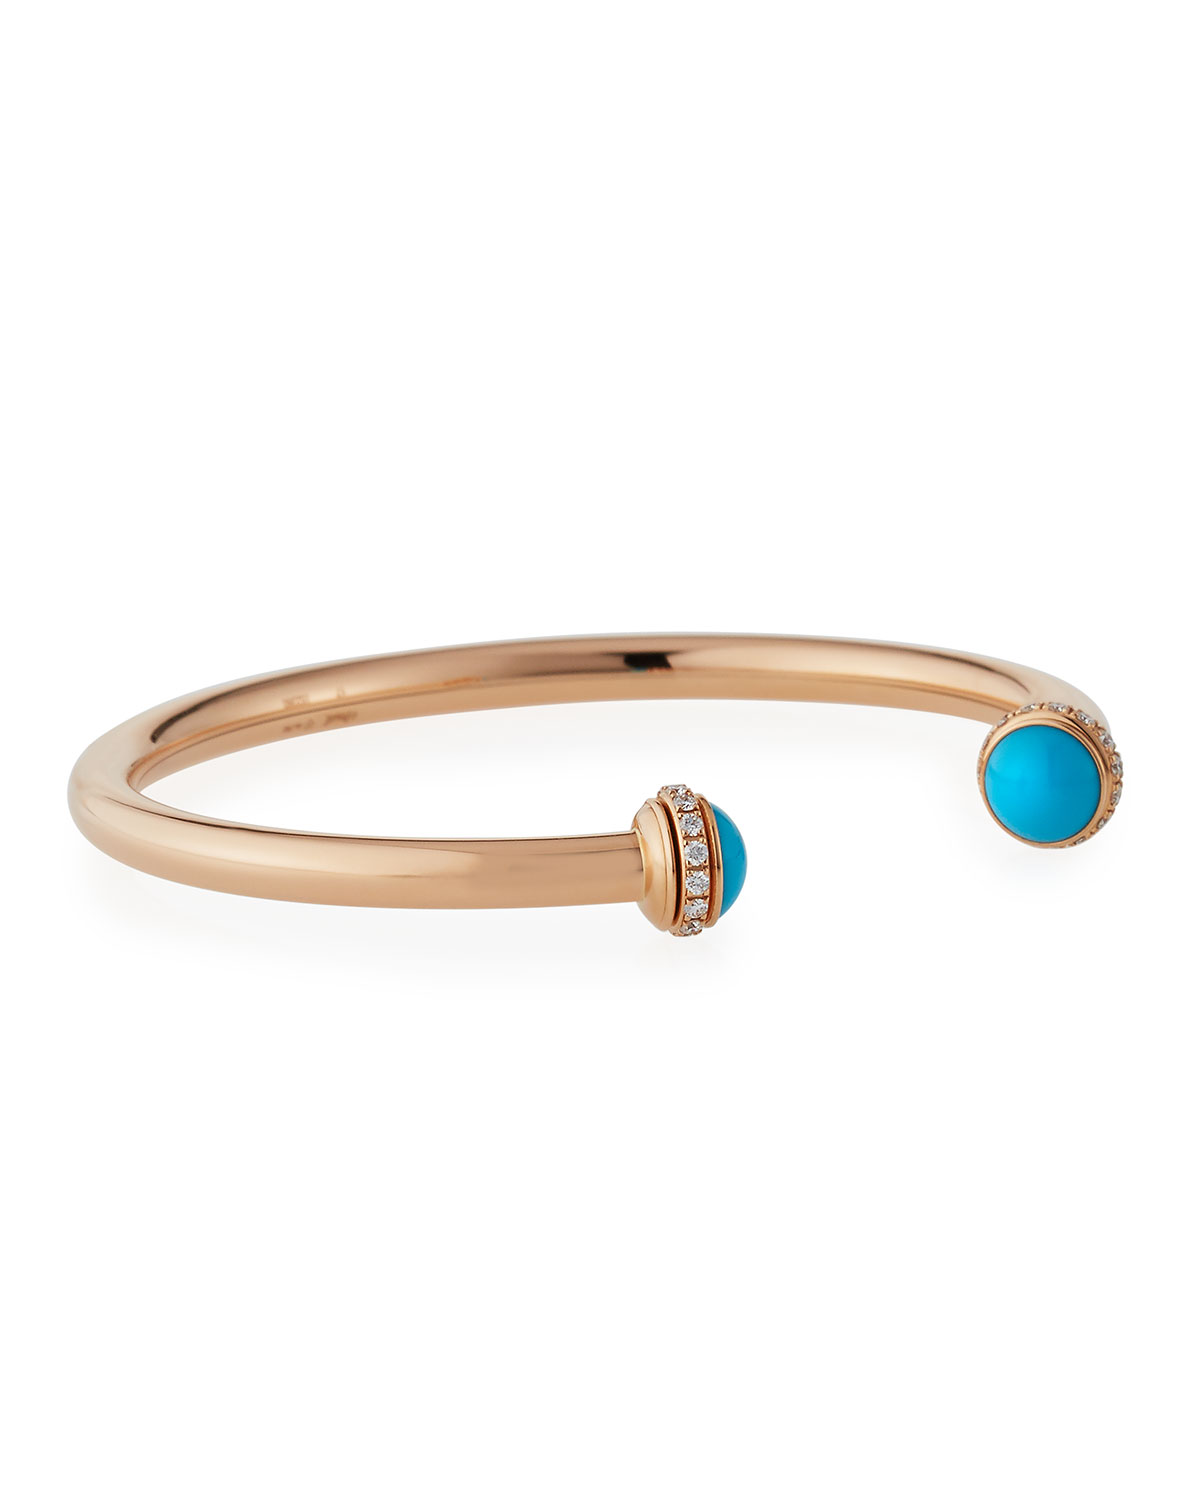 Piaget Possession 18K Red Gold & Turquoise Cabochon Bracelet with Diamonds, Size L